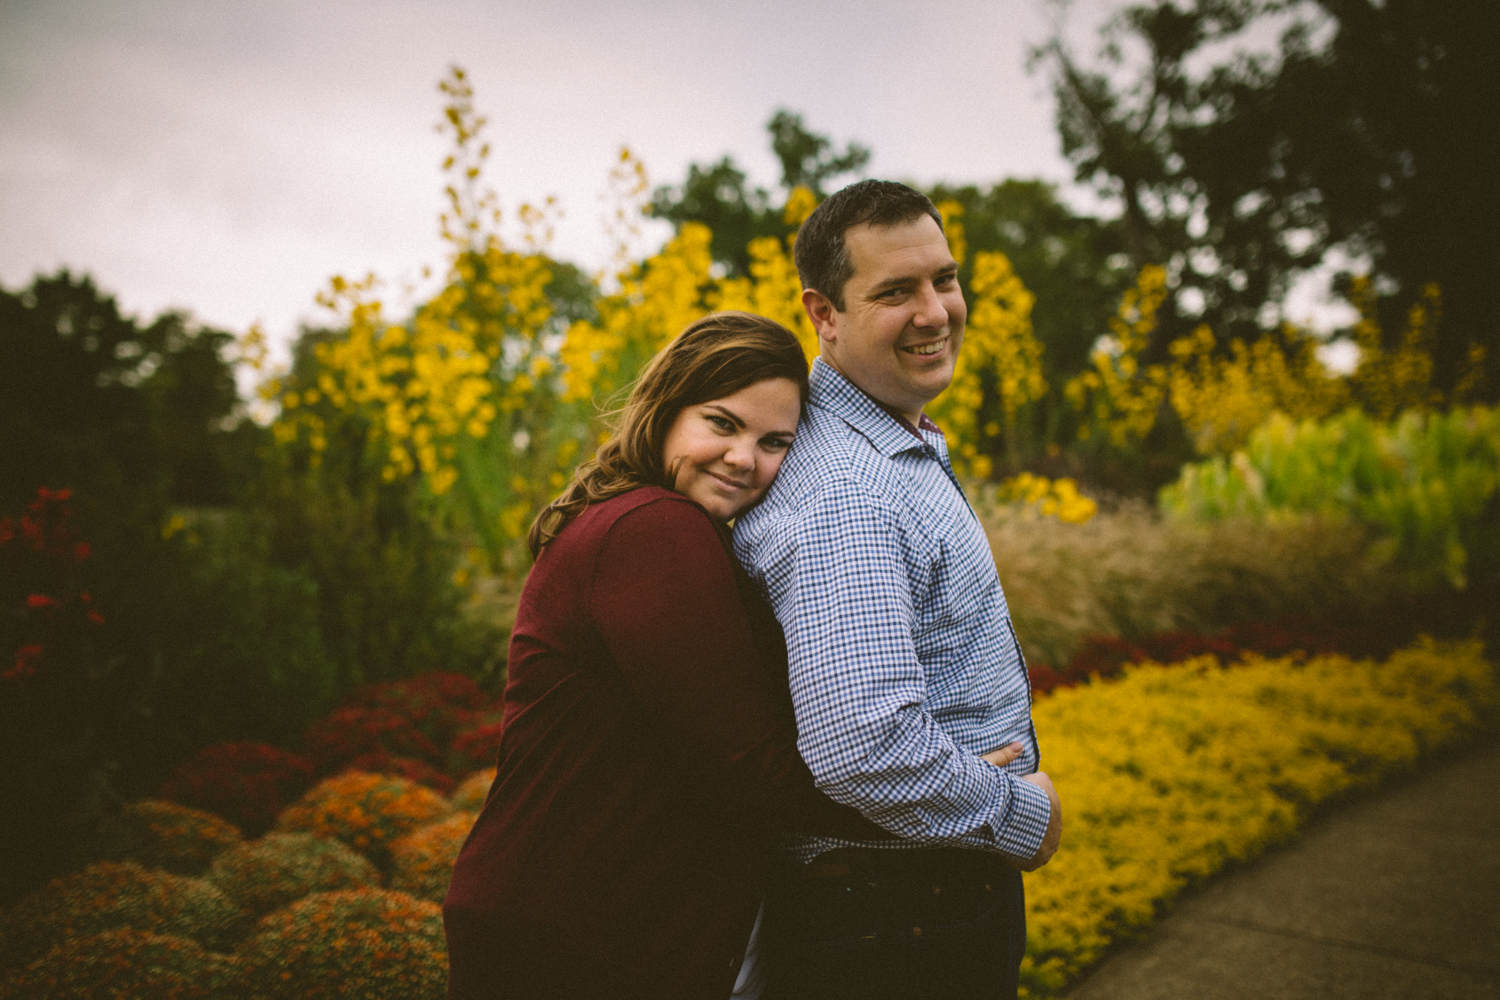 Cheekwood_Botanical_Gardens_engagement_photos-9.jpg